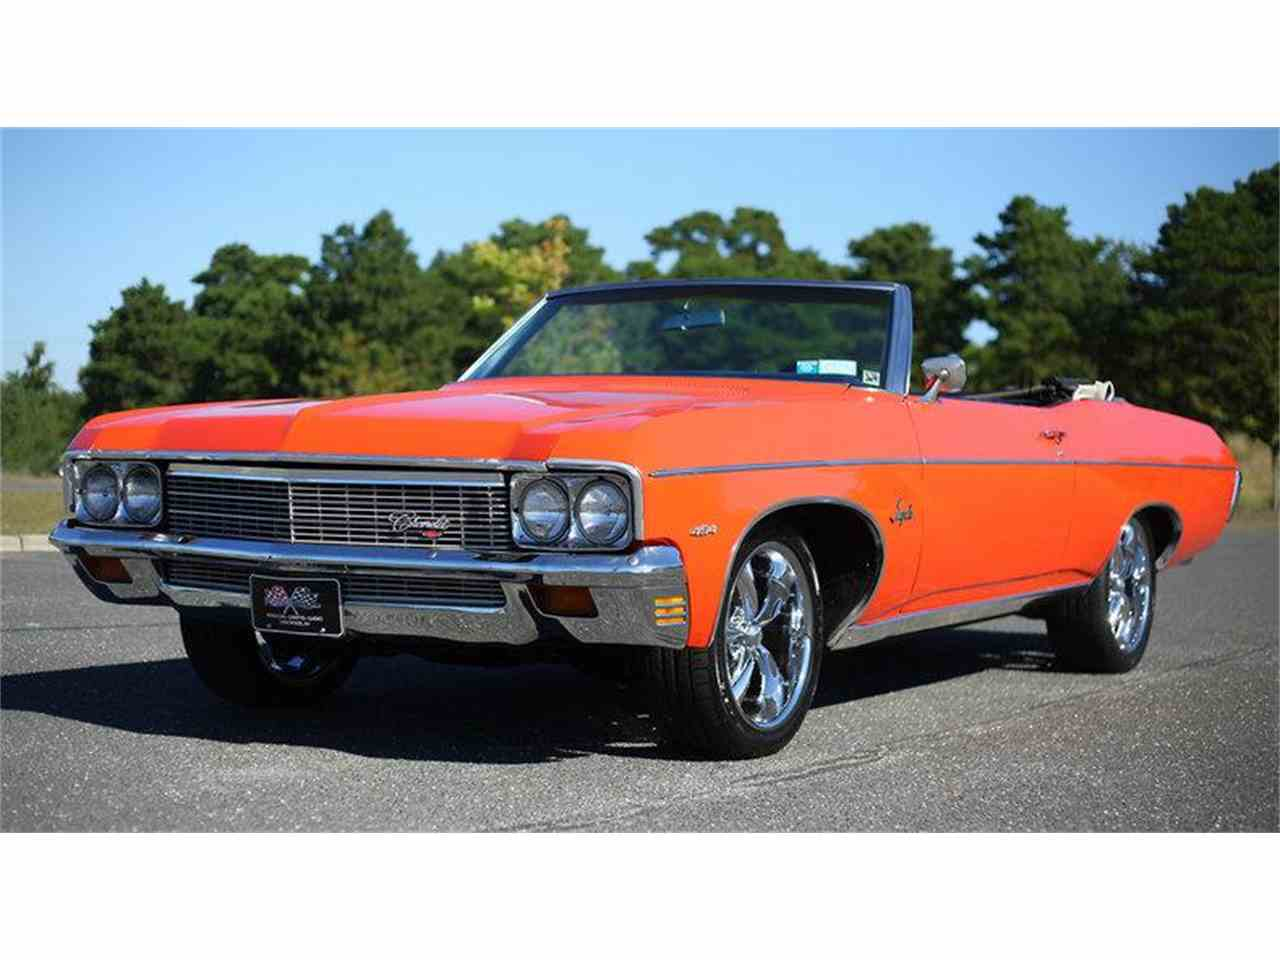 Chevy Dealers Tampa >> 1970 Chevrolet Impala for Sale | ClassicCars.com | CC-999216